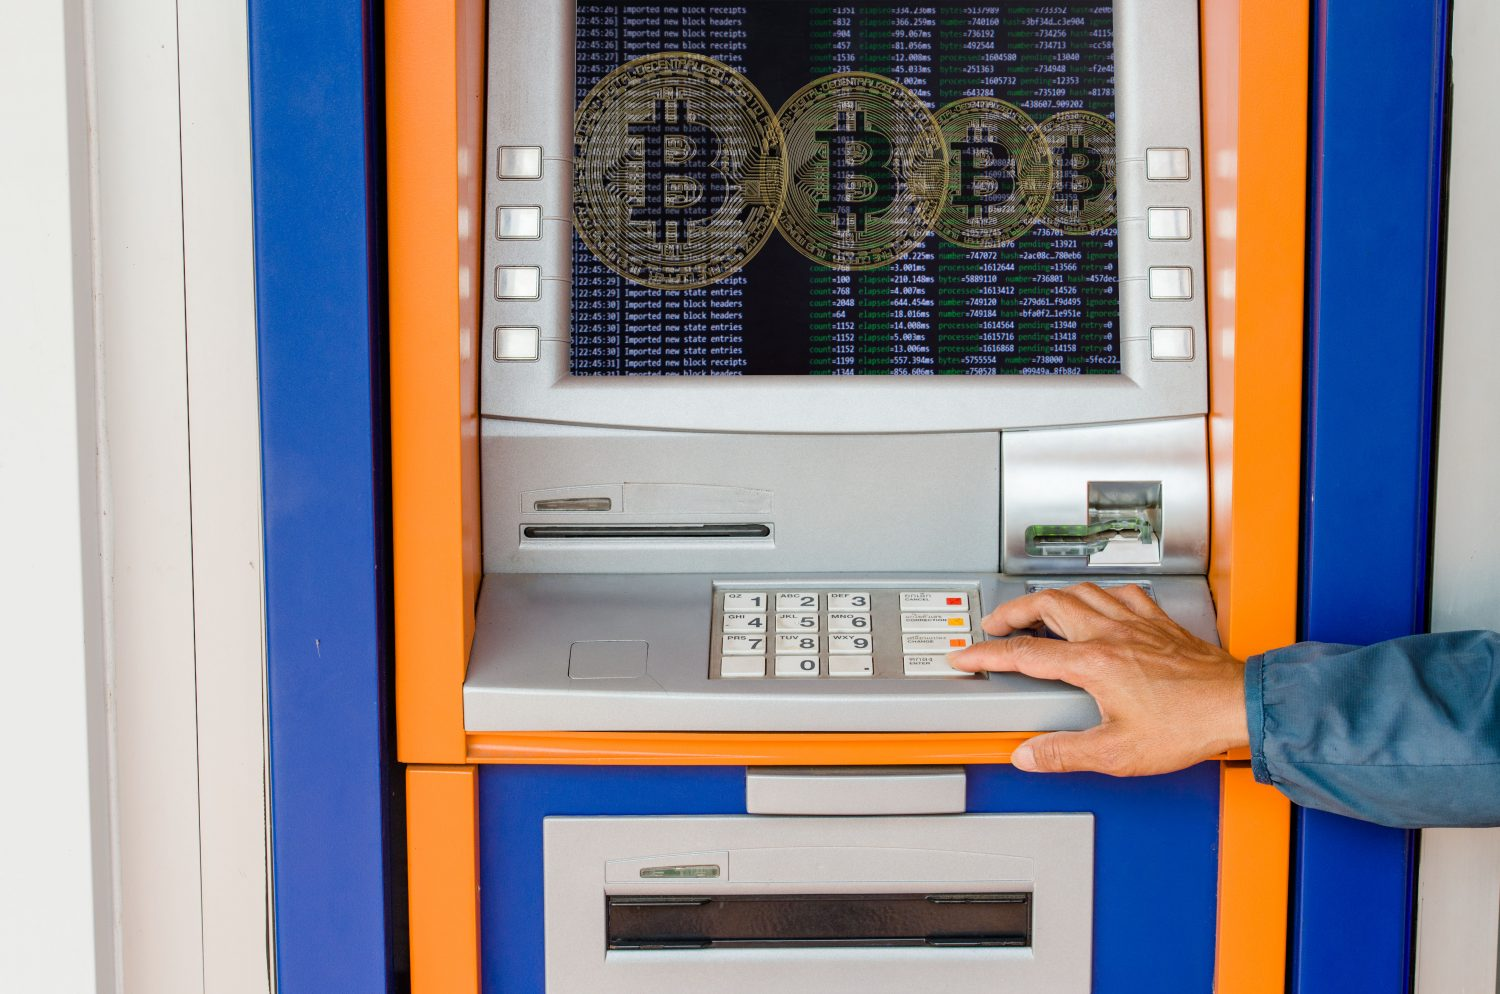 Vancouver Saw the First-Ever Bitcoin ATM  Now Its Mayor Wants to Ban